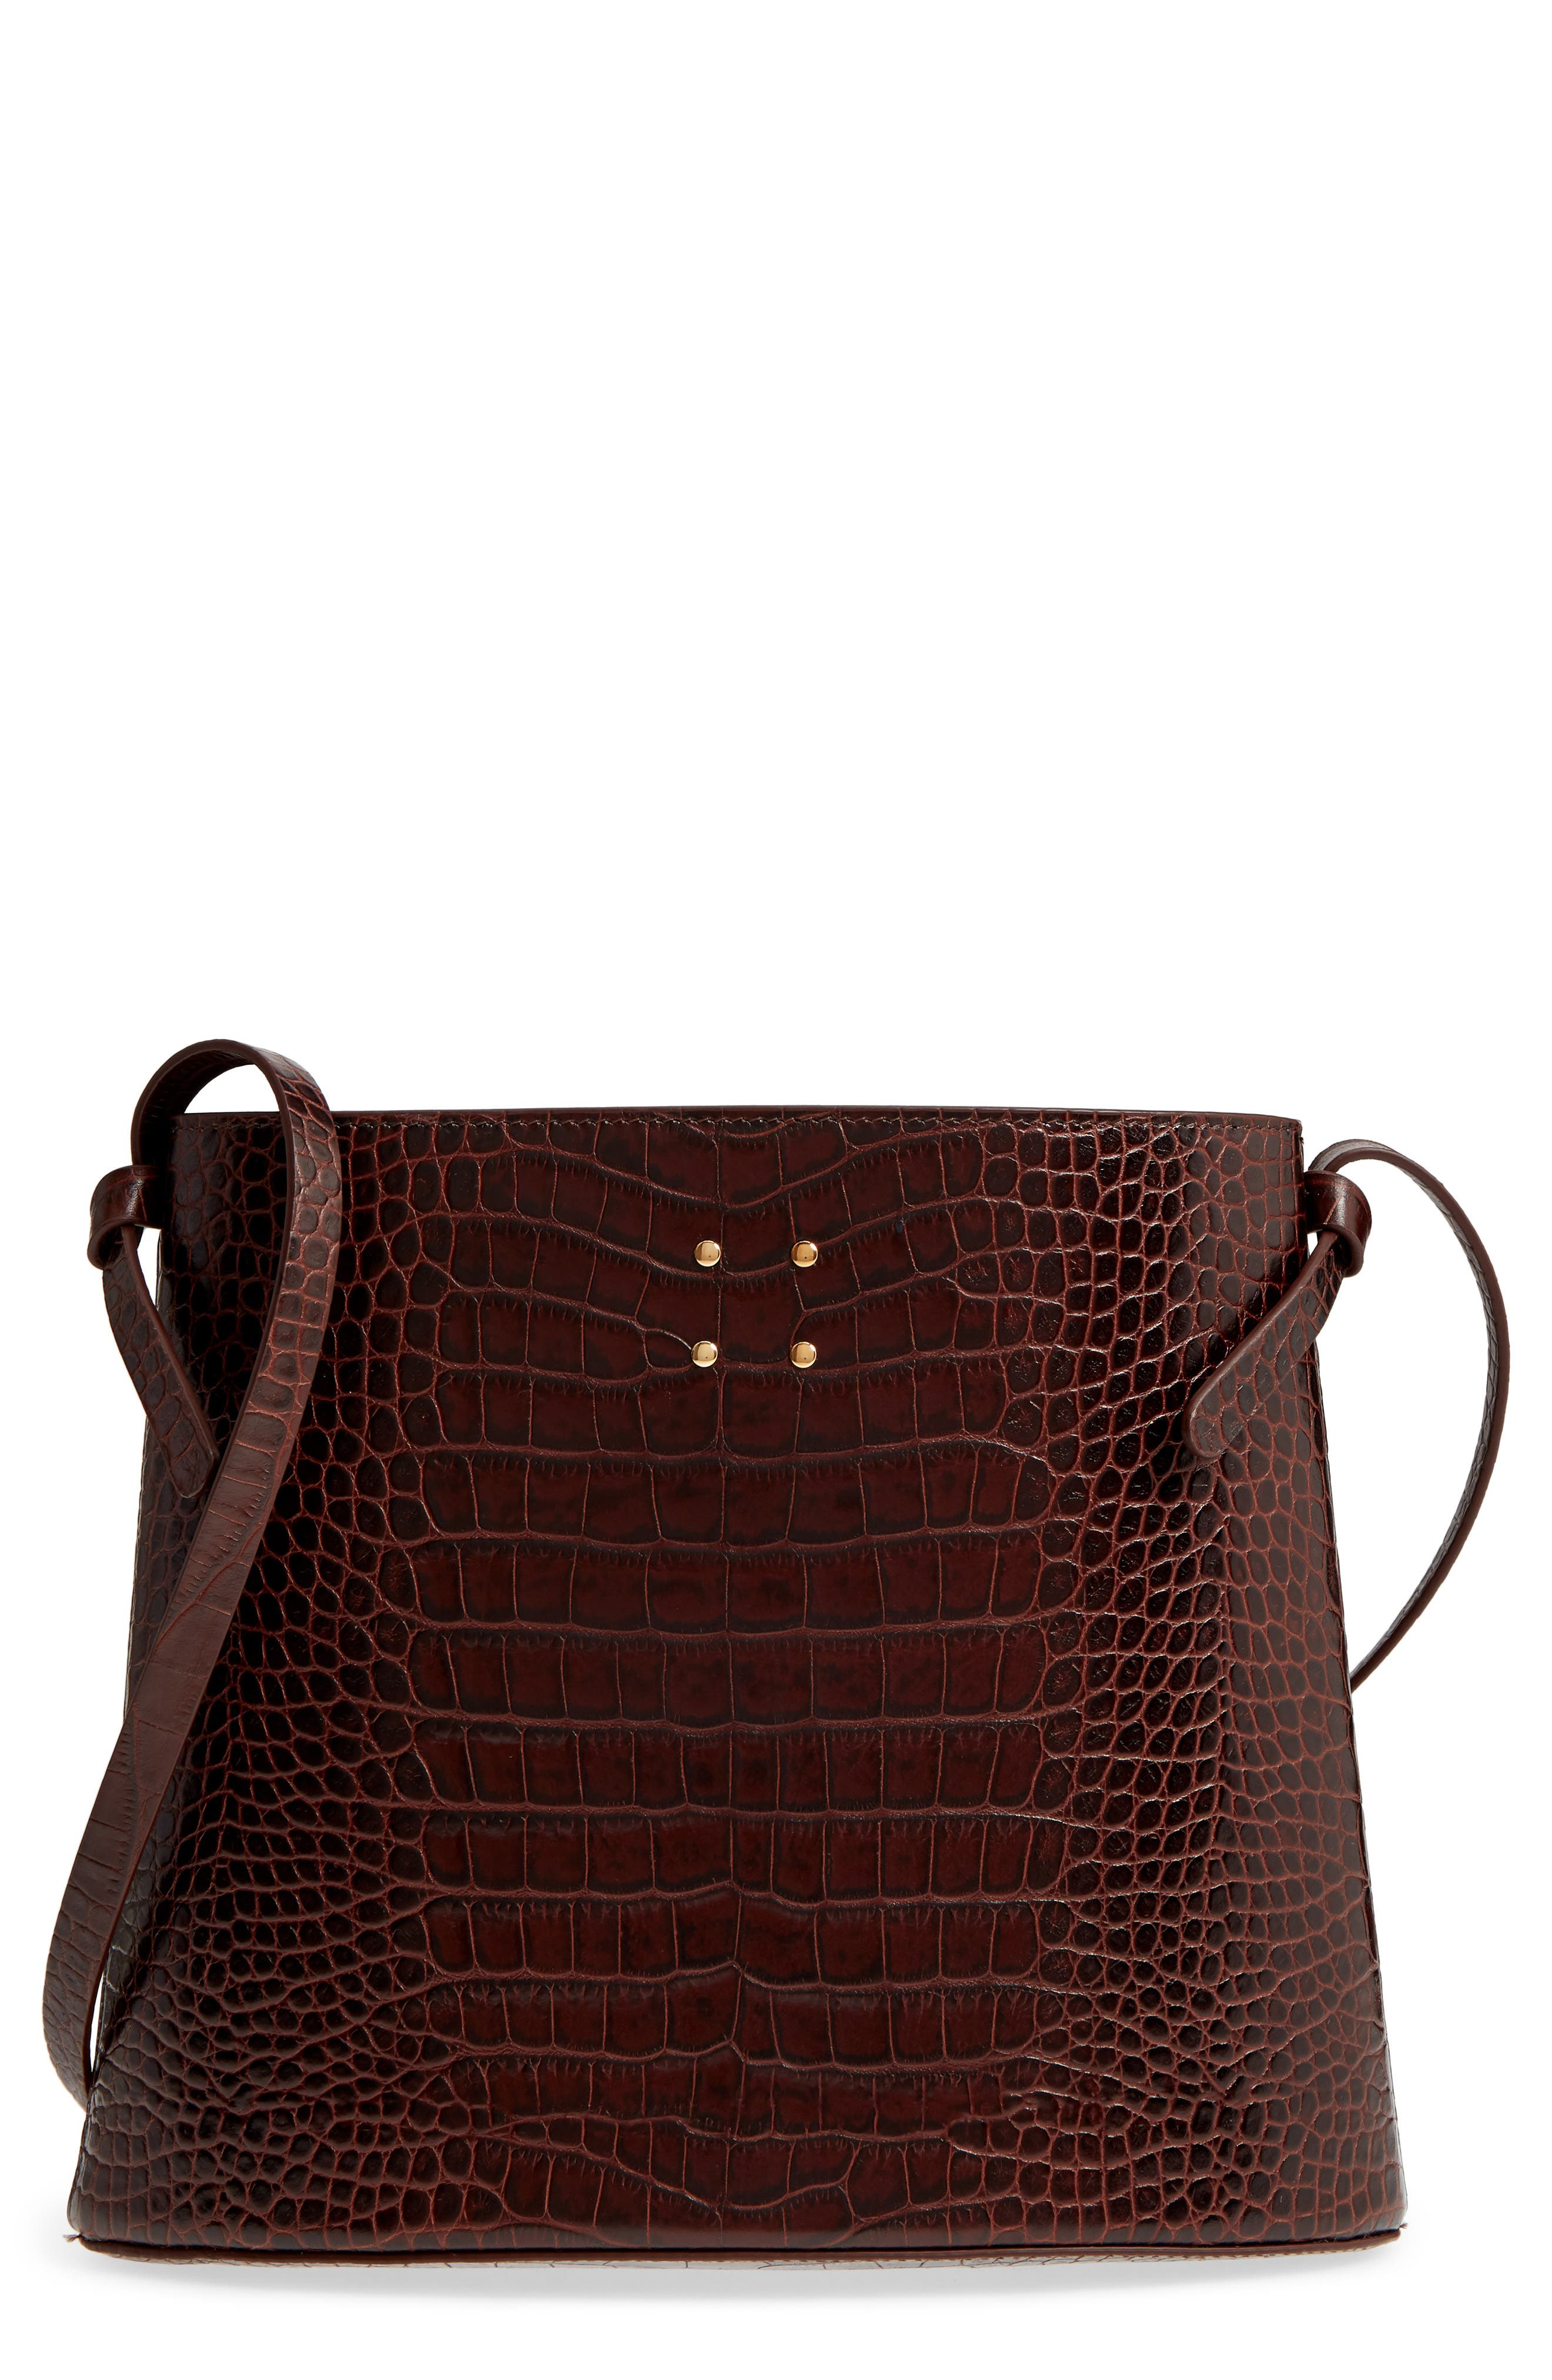 Sybil Croc Embossed Leather Tote,                             Main thumbnail 1, color,                             200